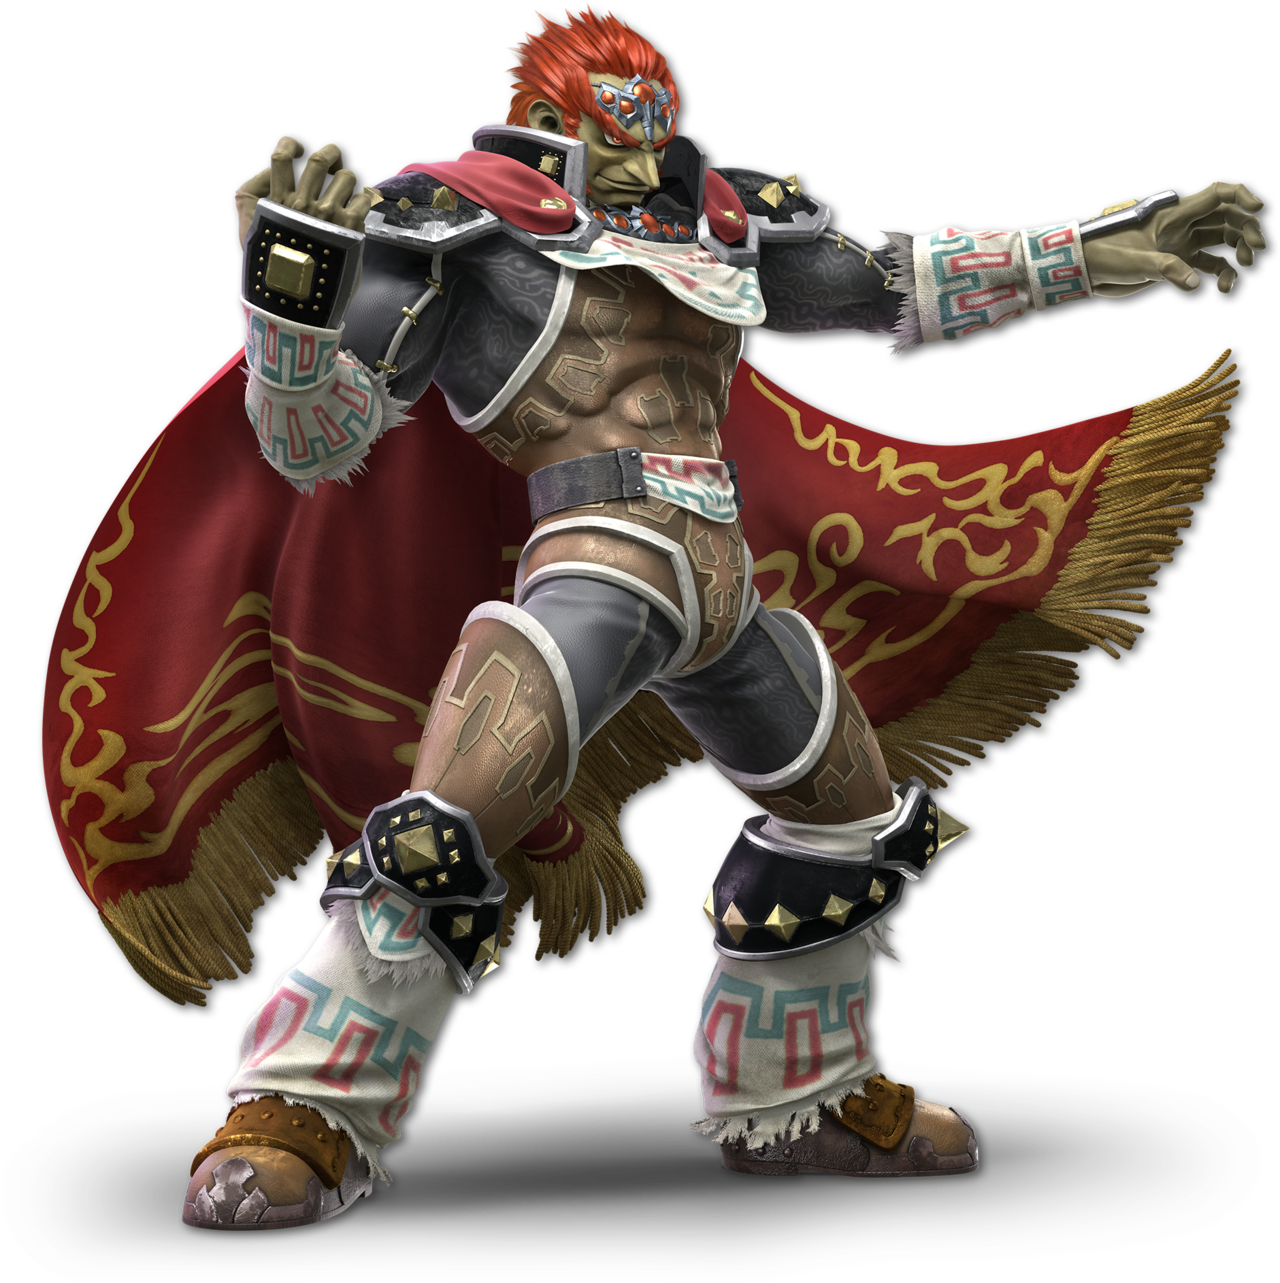 Ganondorf In Super Smash Bros Ultimate Super Smash